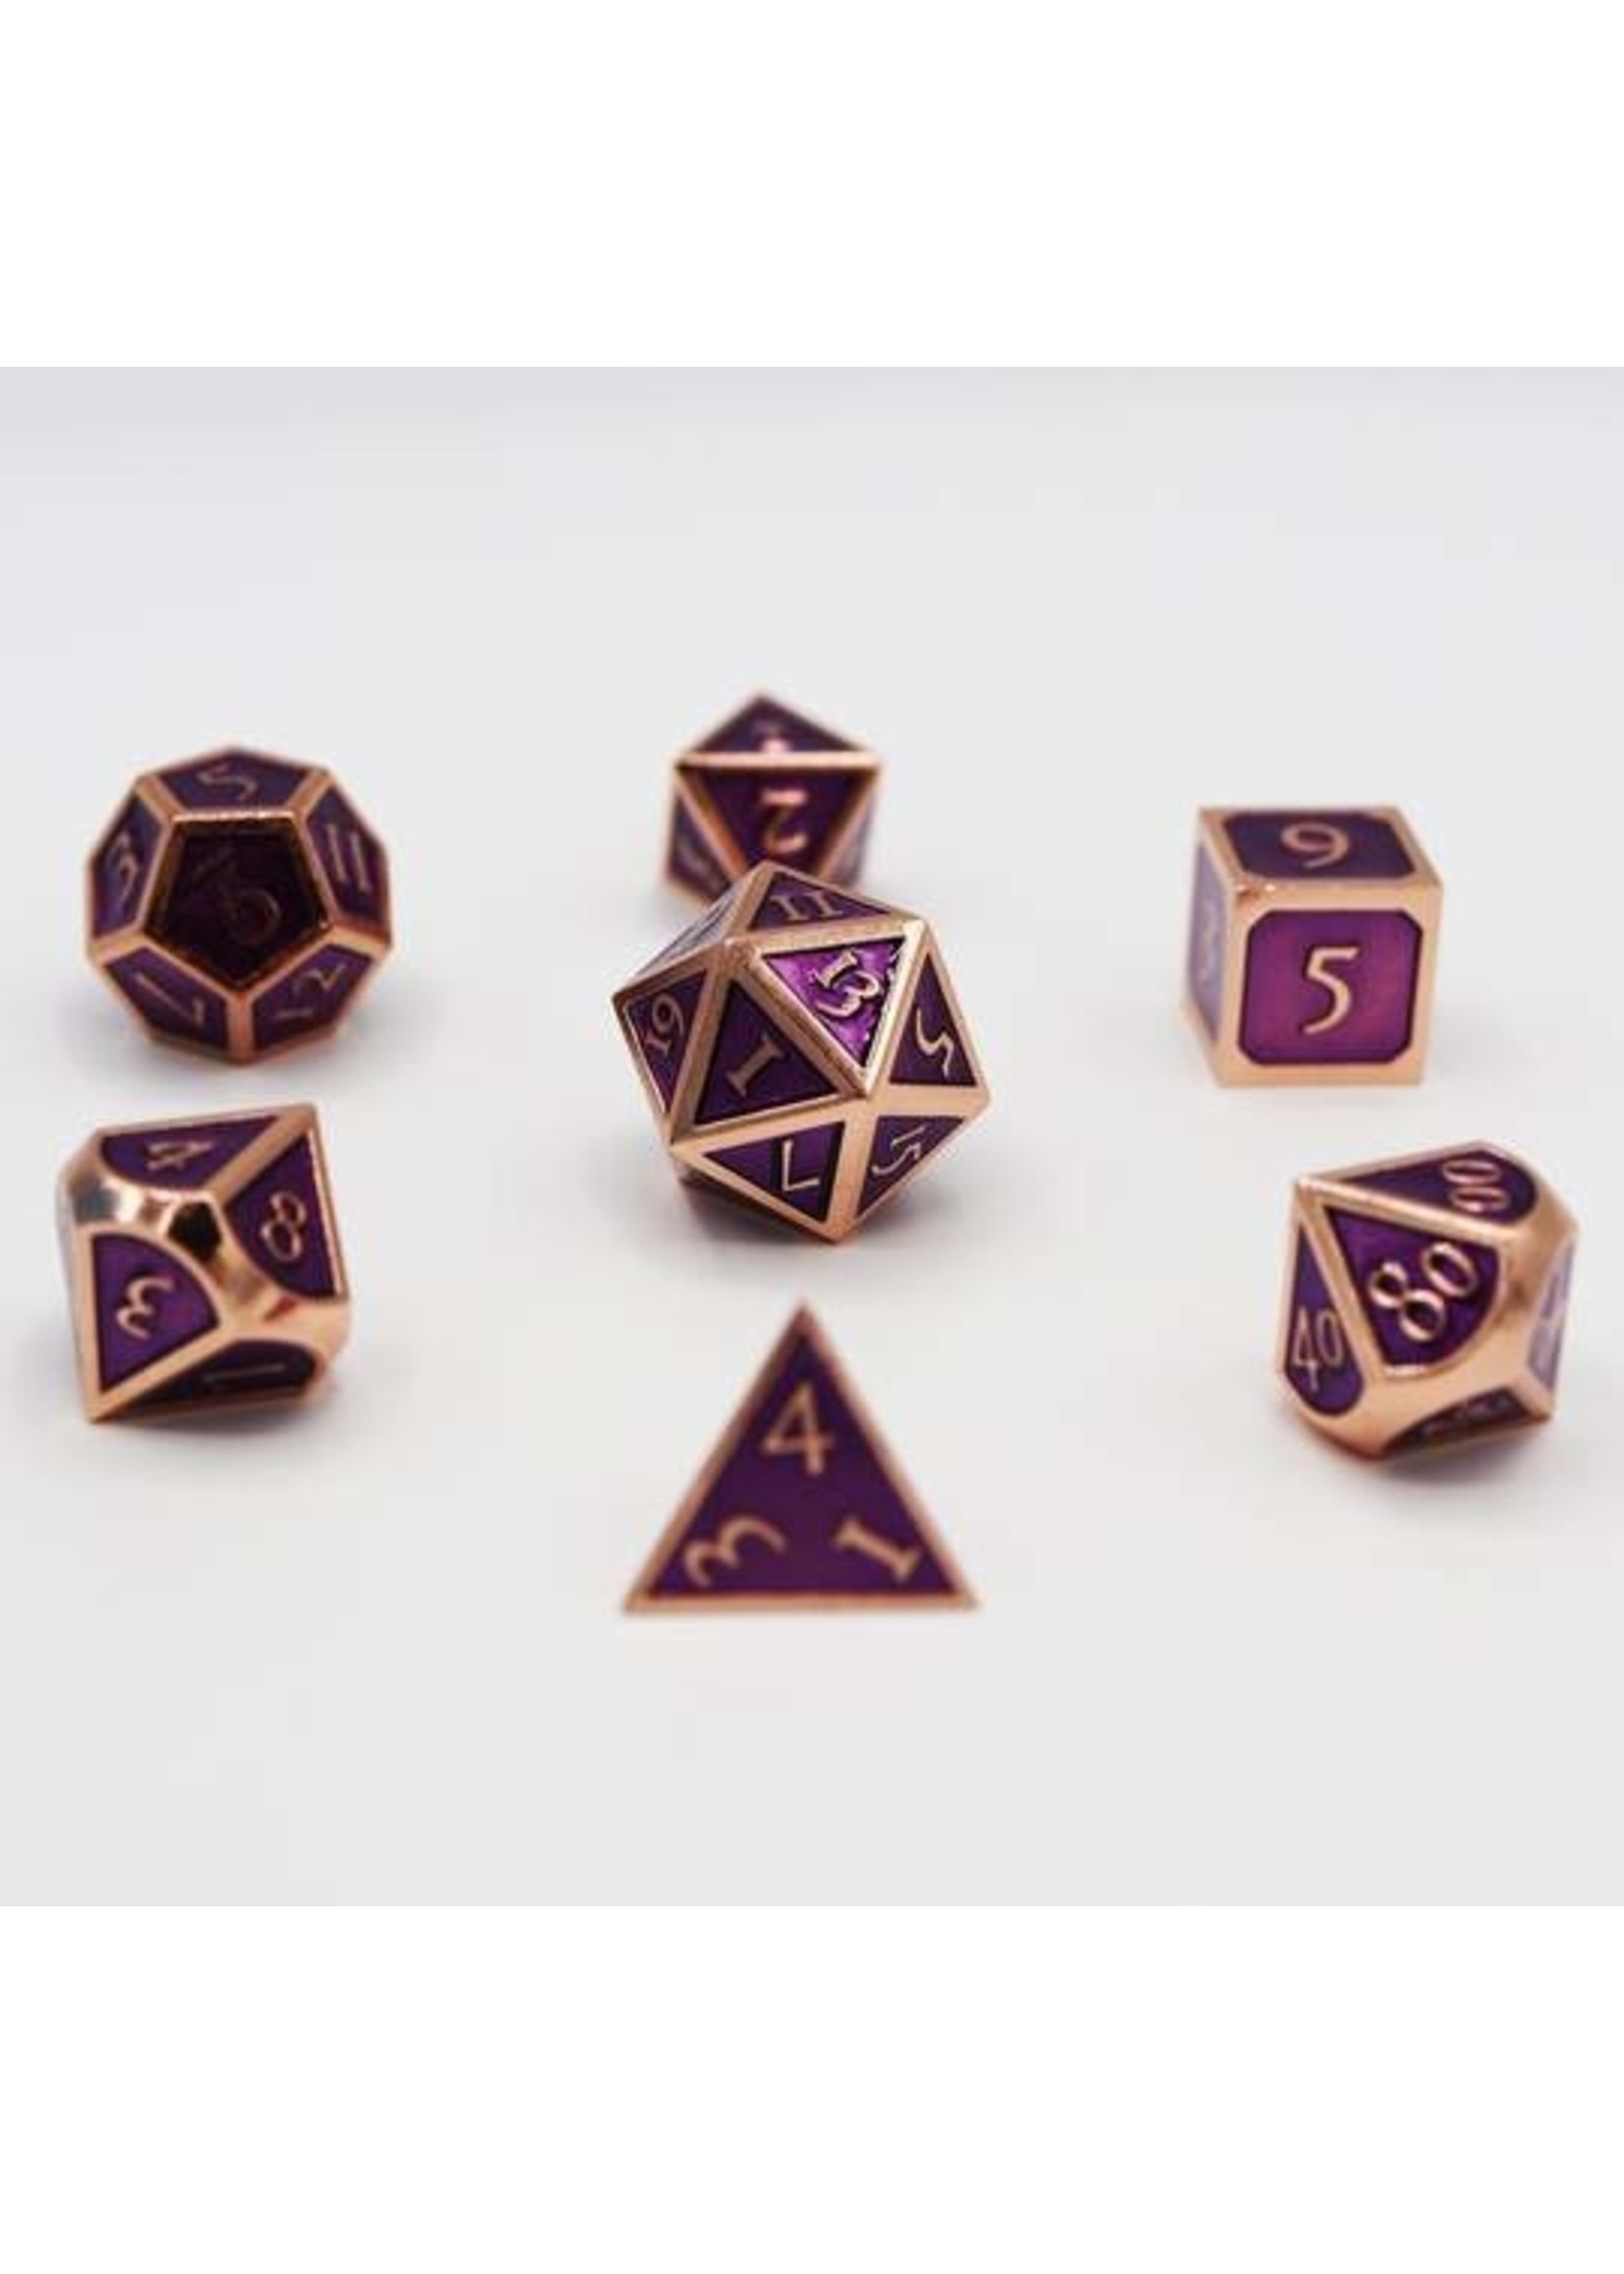 Copper with Amethyst Metal RPG Dice Set